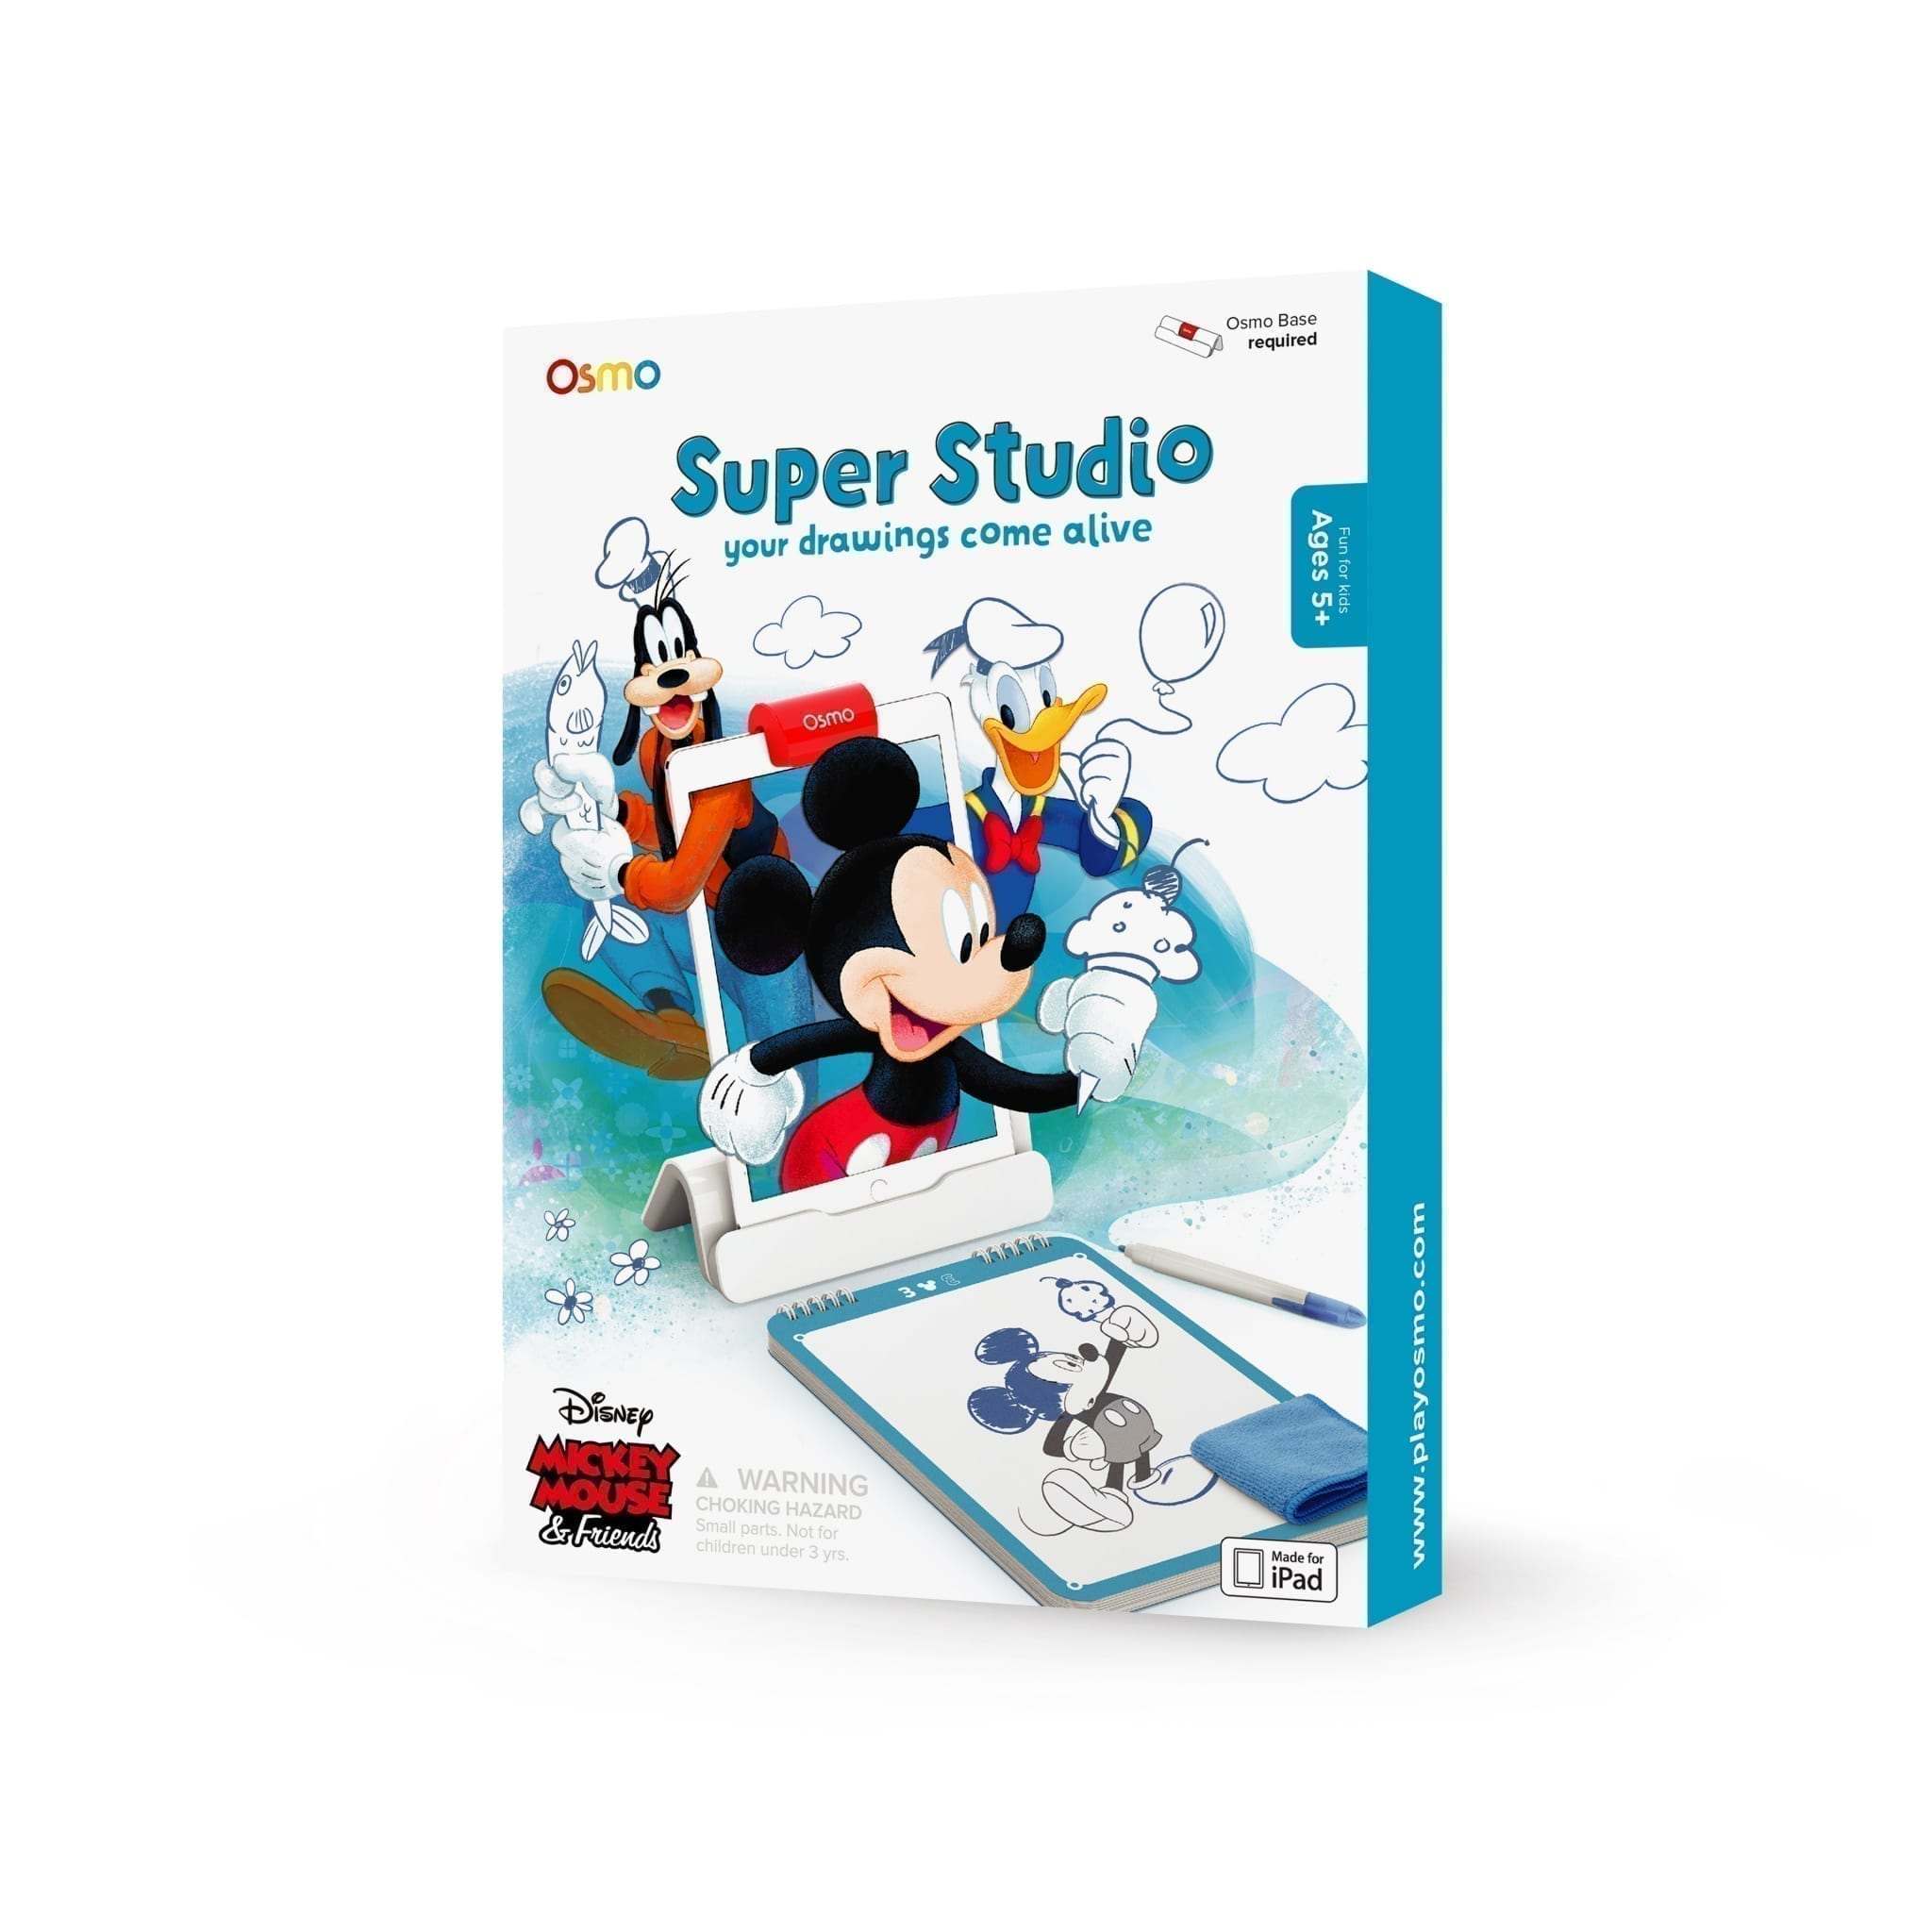 Osmo Super Studio Game – Disney Mickey Mouse & Friends